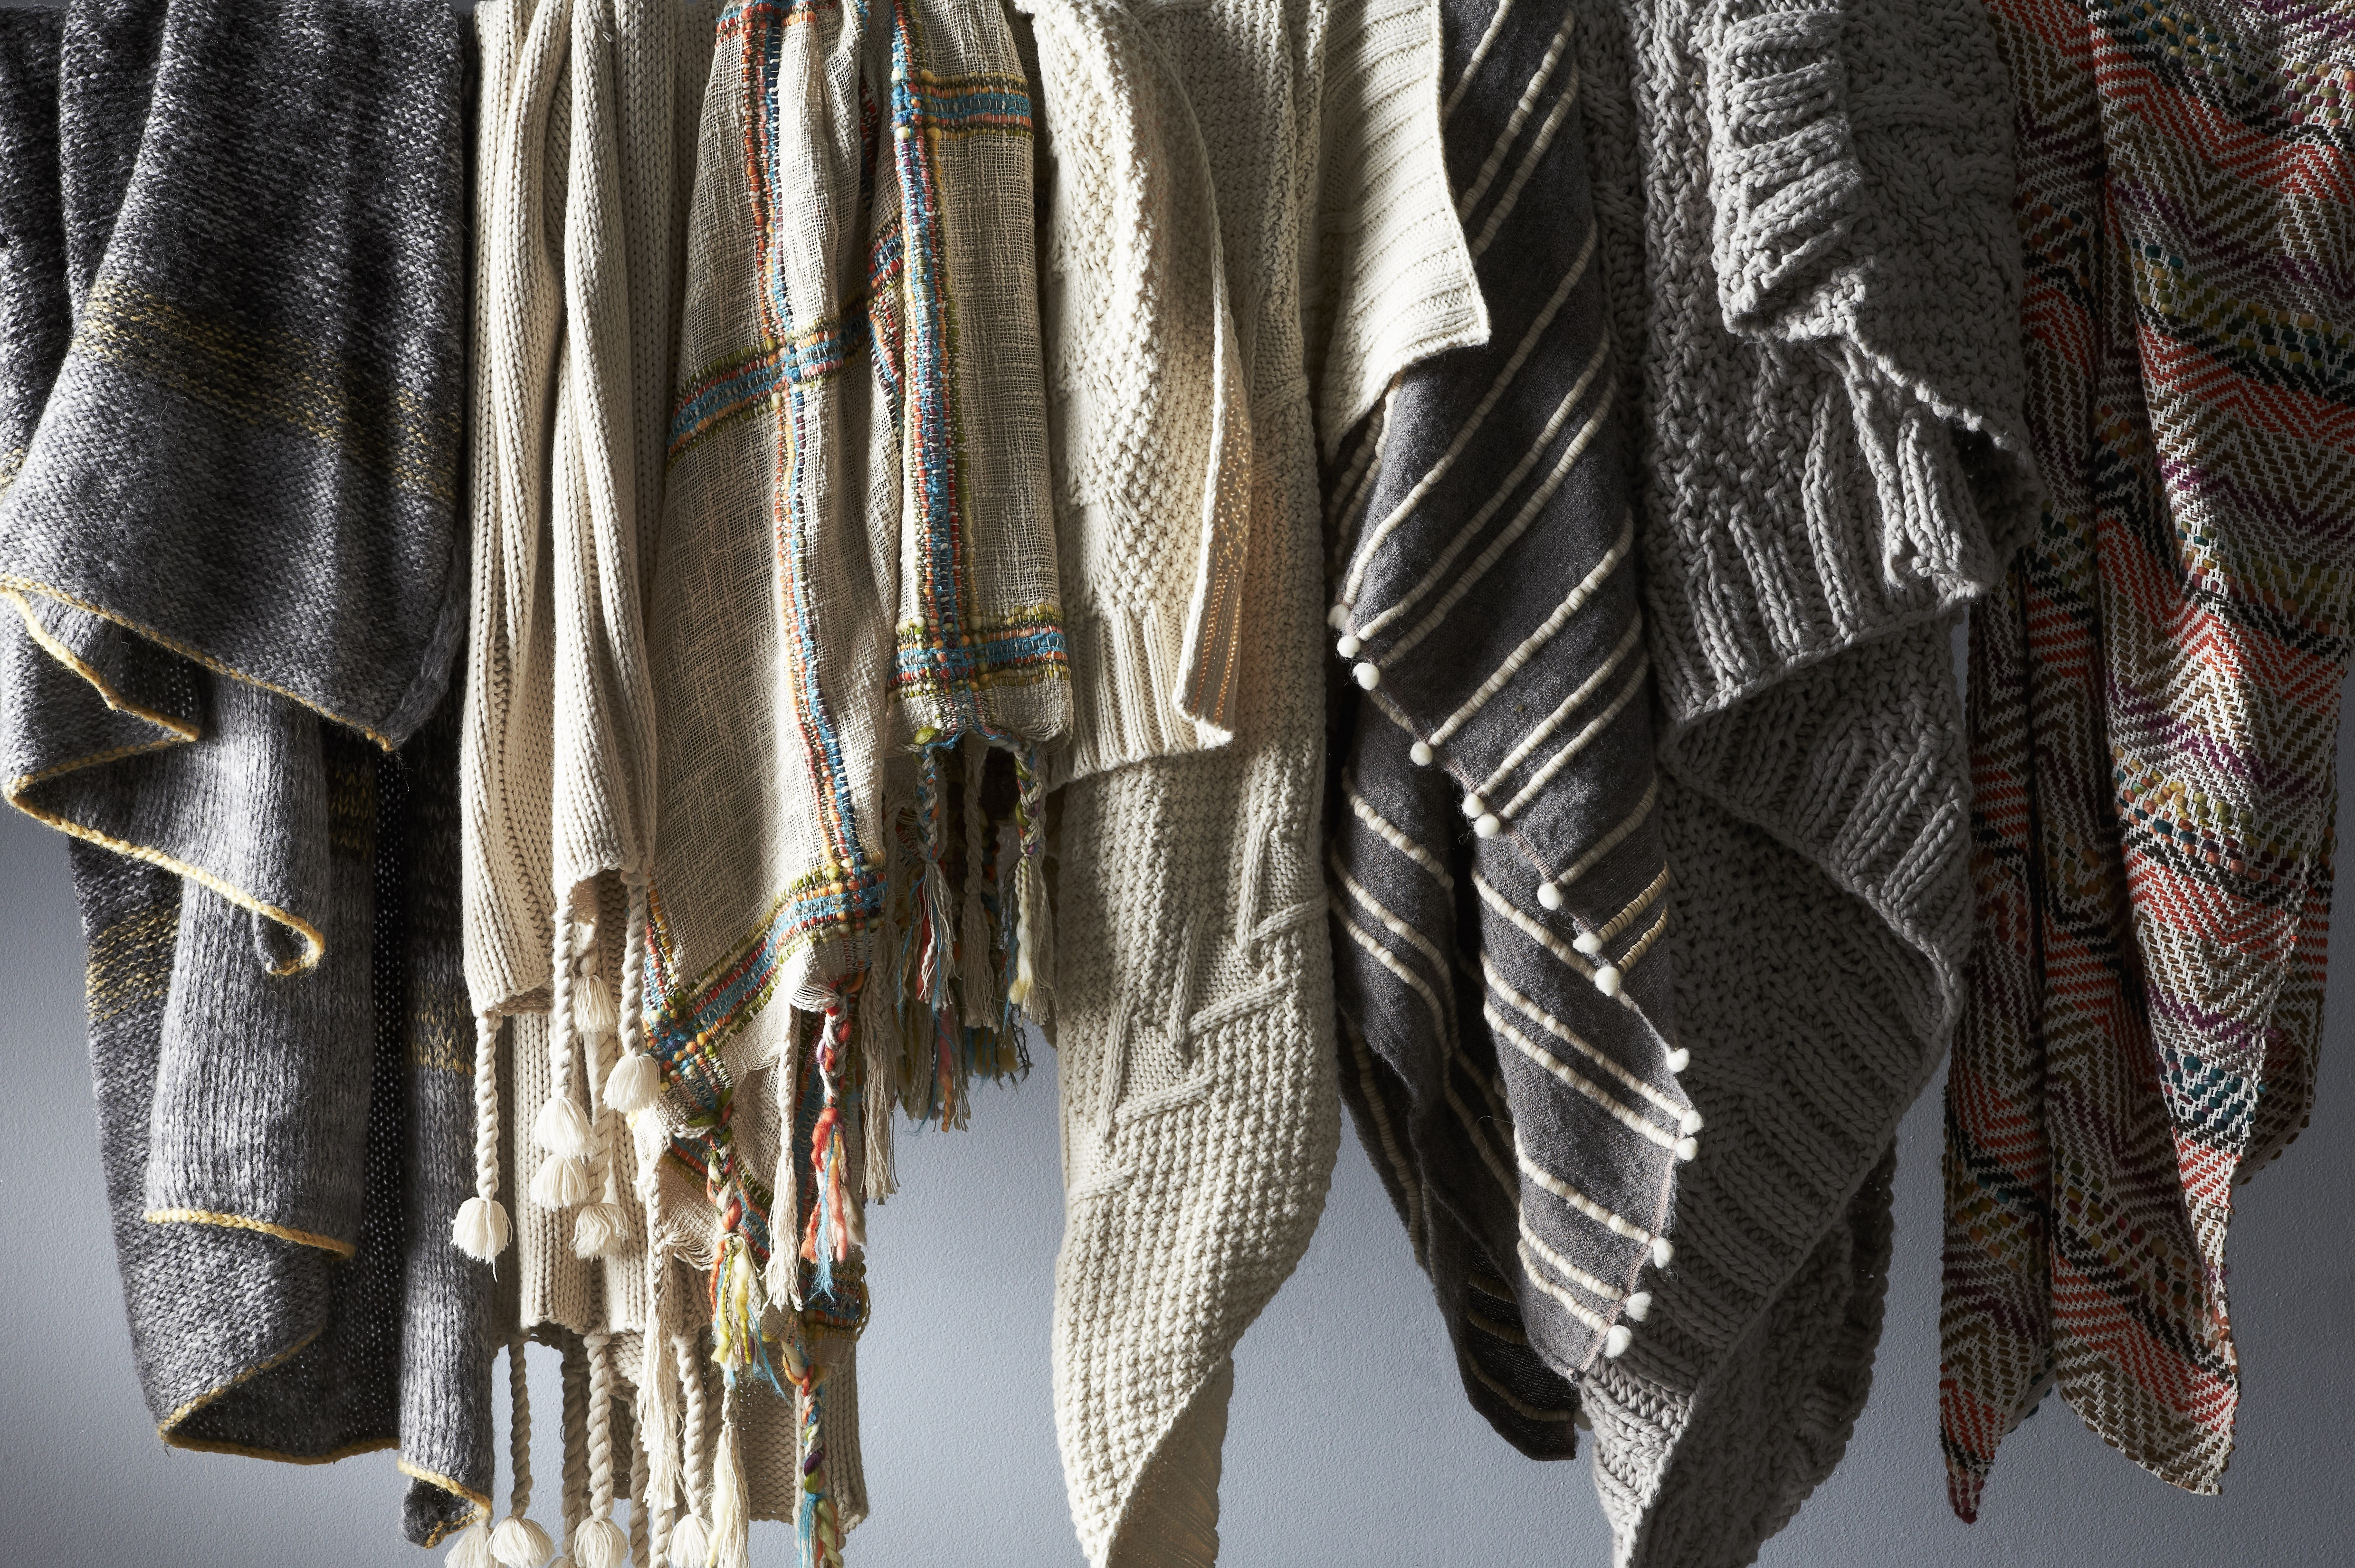 Beige Decor - Mix with Soft Fabrics in Varying Textures